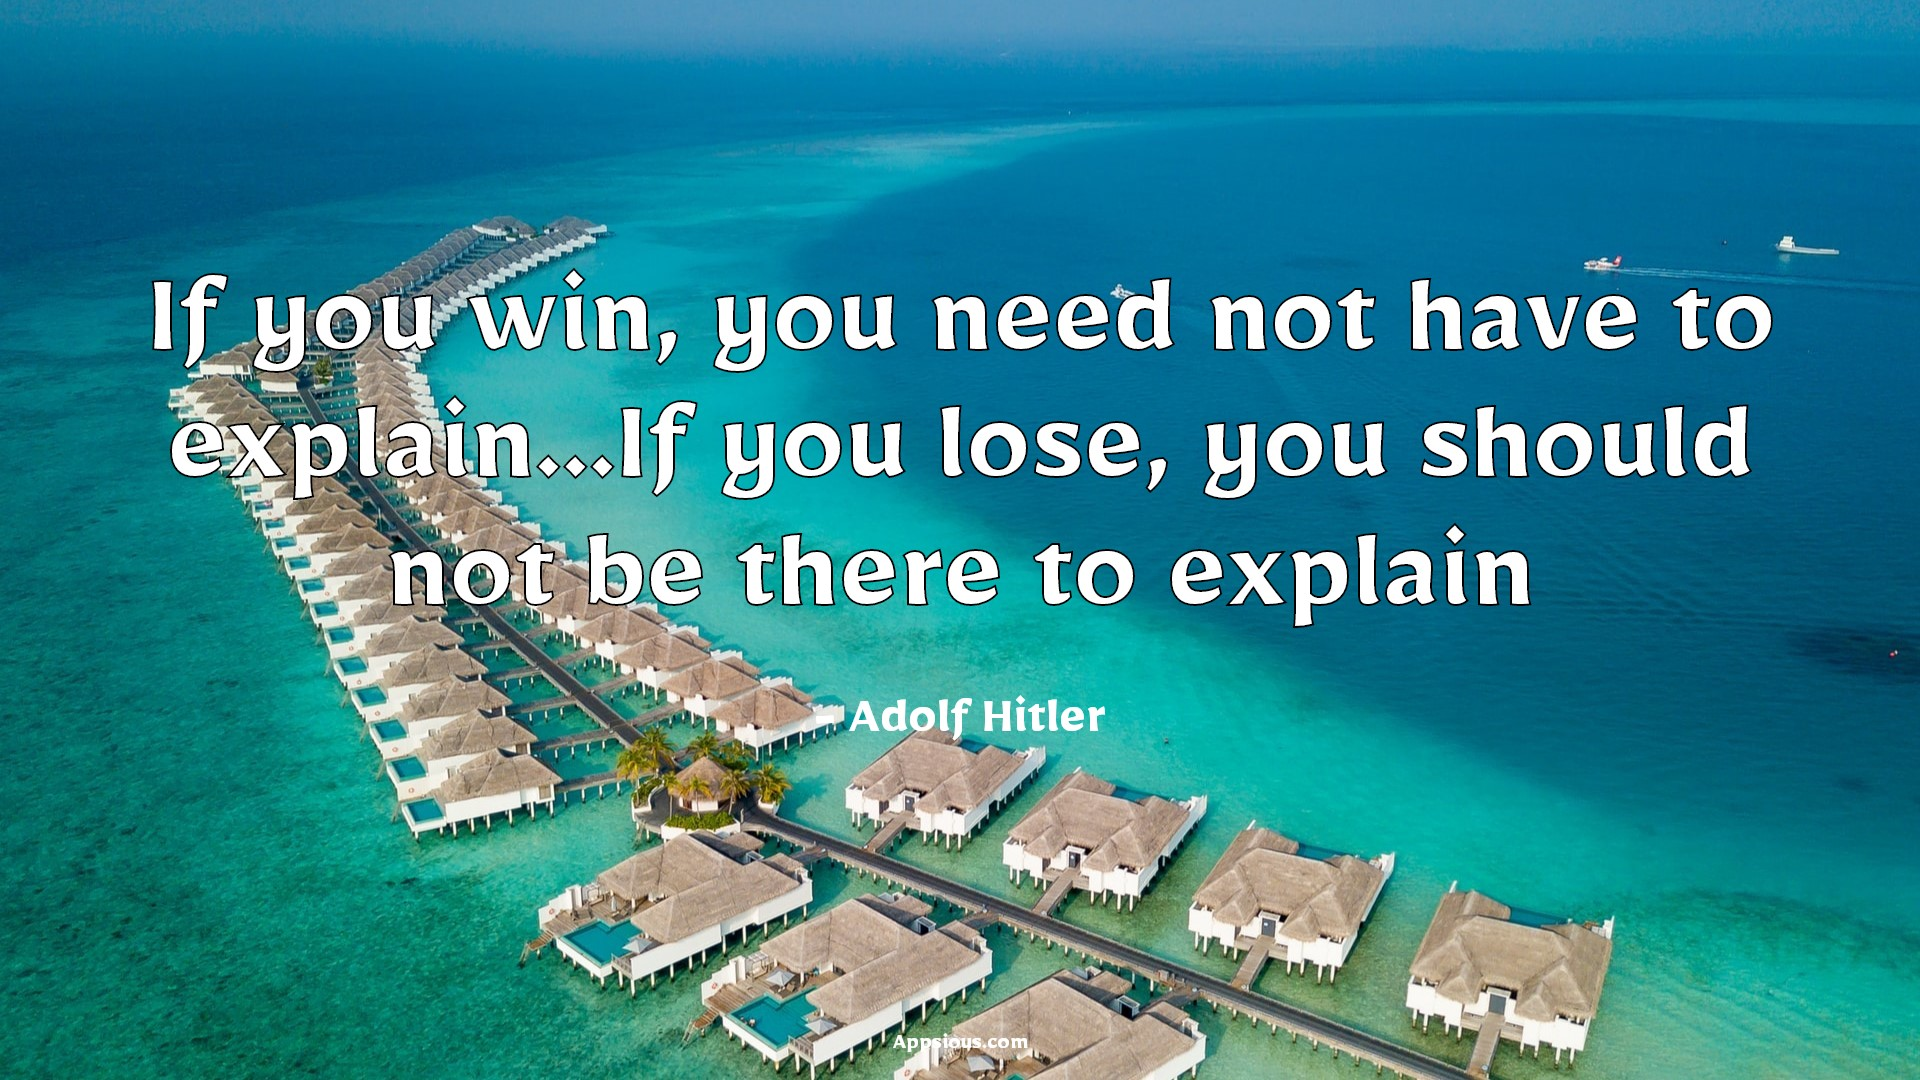 If you win, you need not have to explain...If you lose, you should not be there to explain